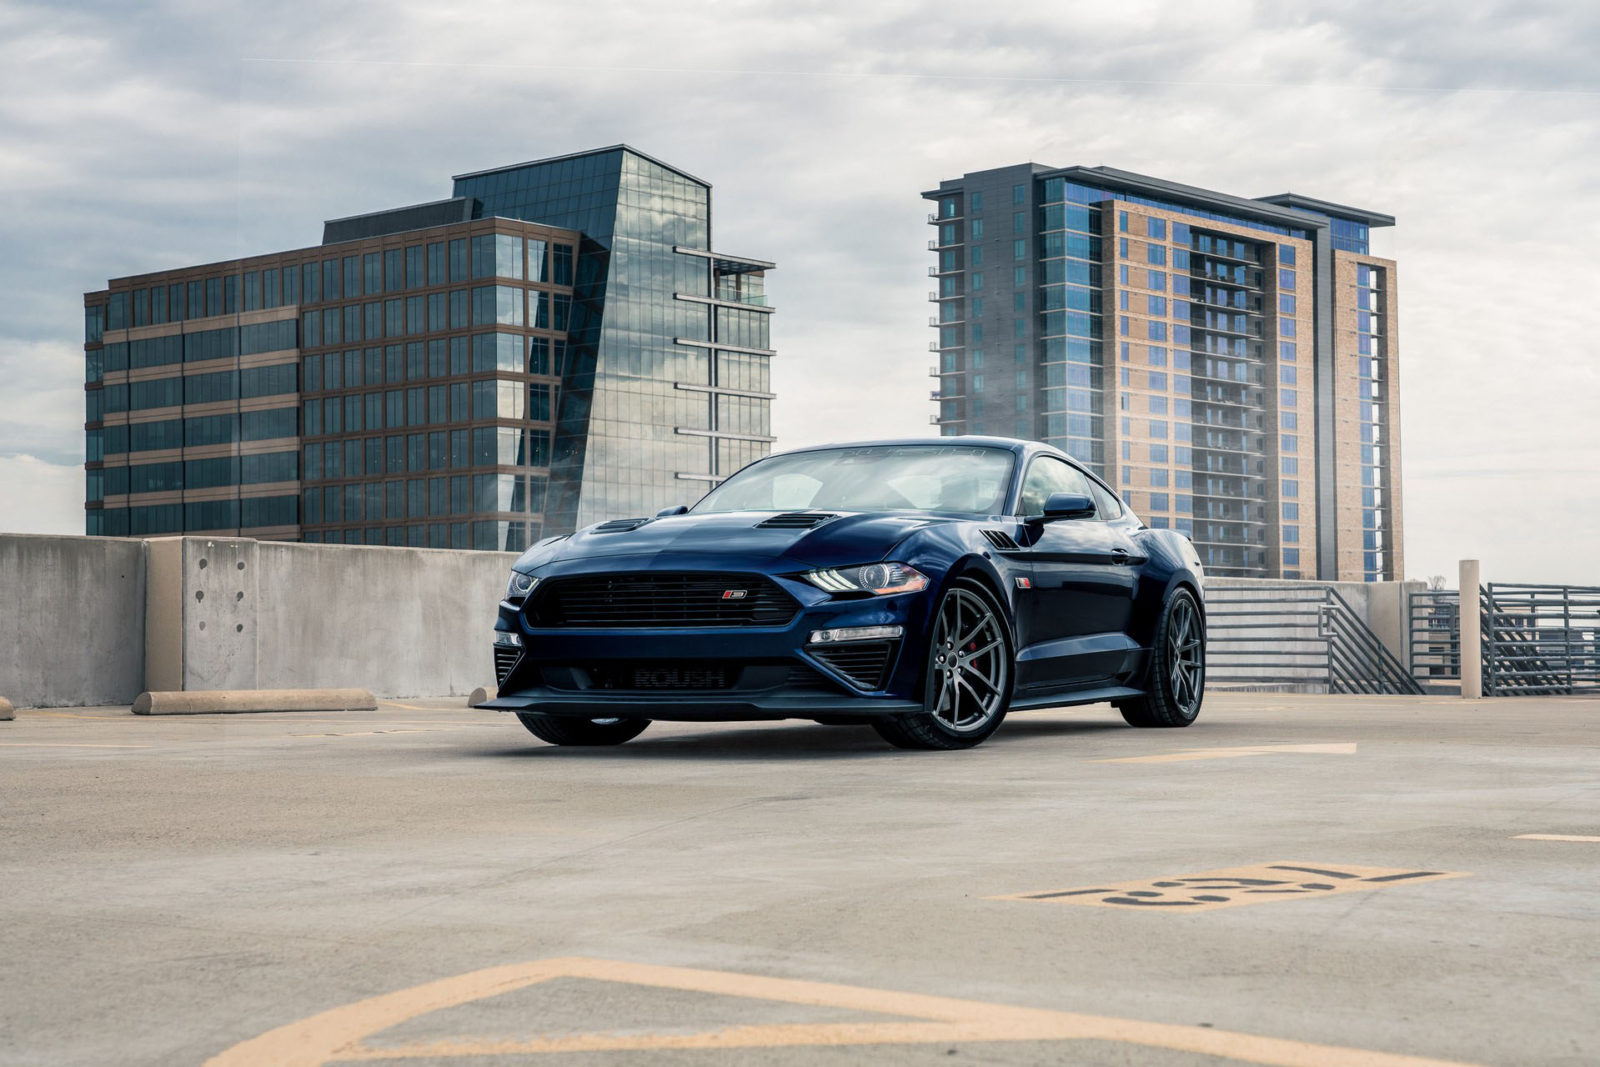 roush-performance-option-almost-doubles-the-price-on-a-2021-mustang